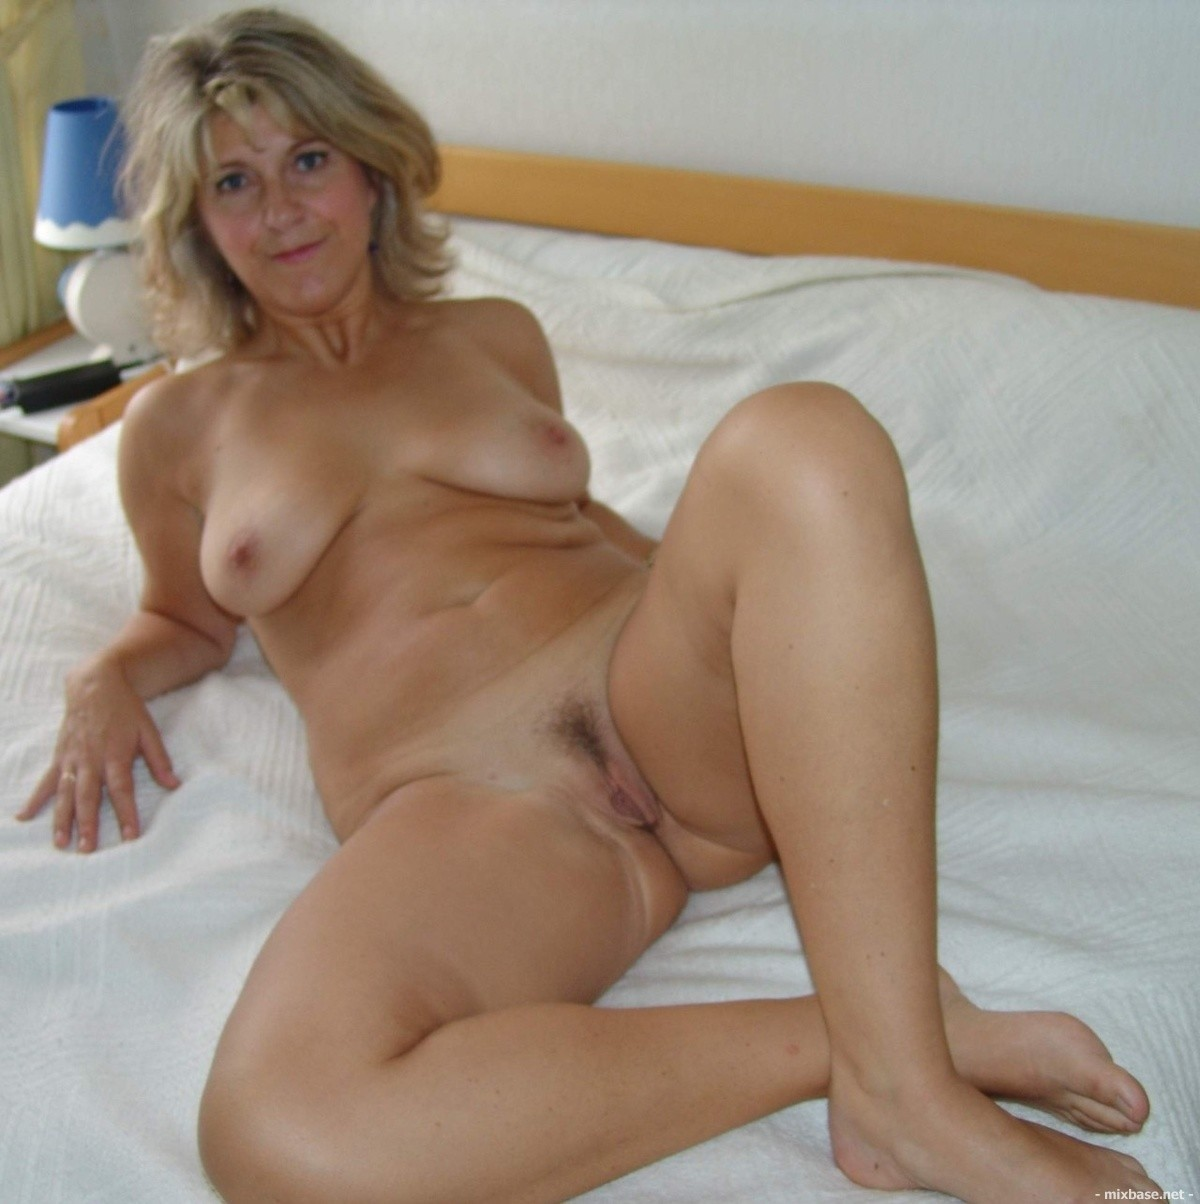 cute very short nude